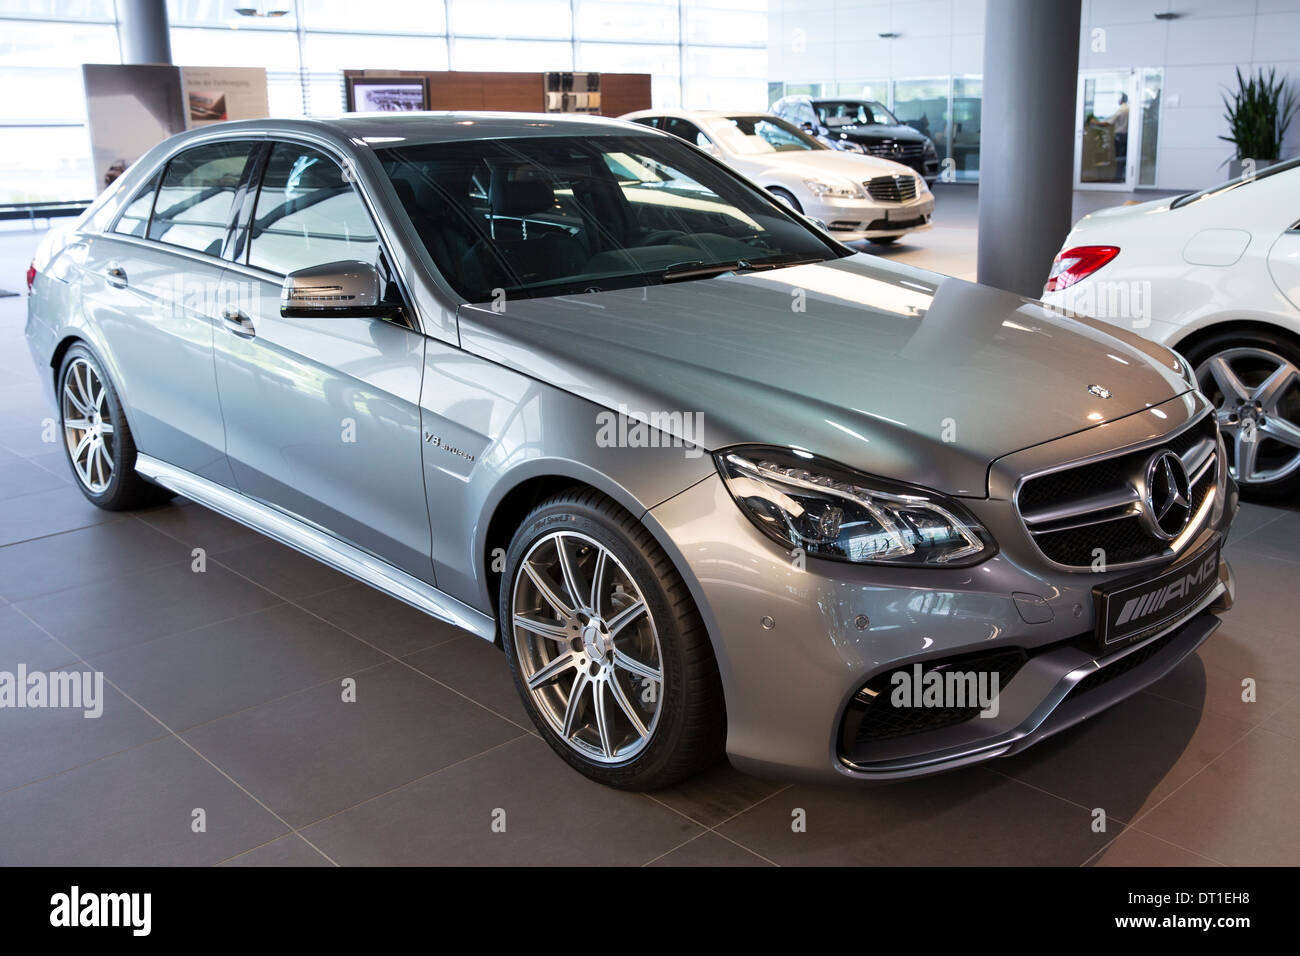 mercedes e63 amg v8 biturbo prix fiat world test drive. Black Bedroom Furniture Sets. Home Design Ideas